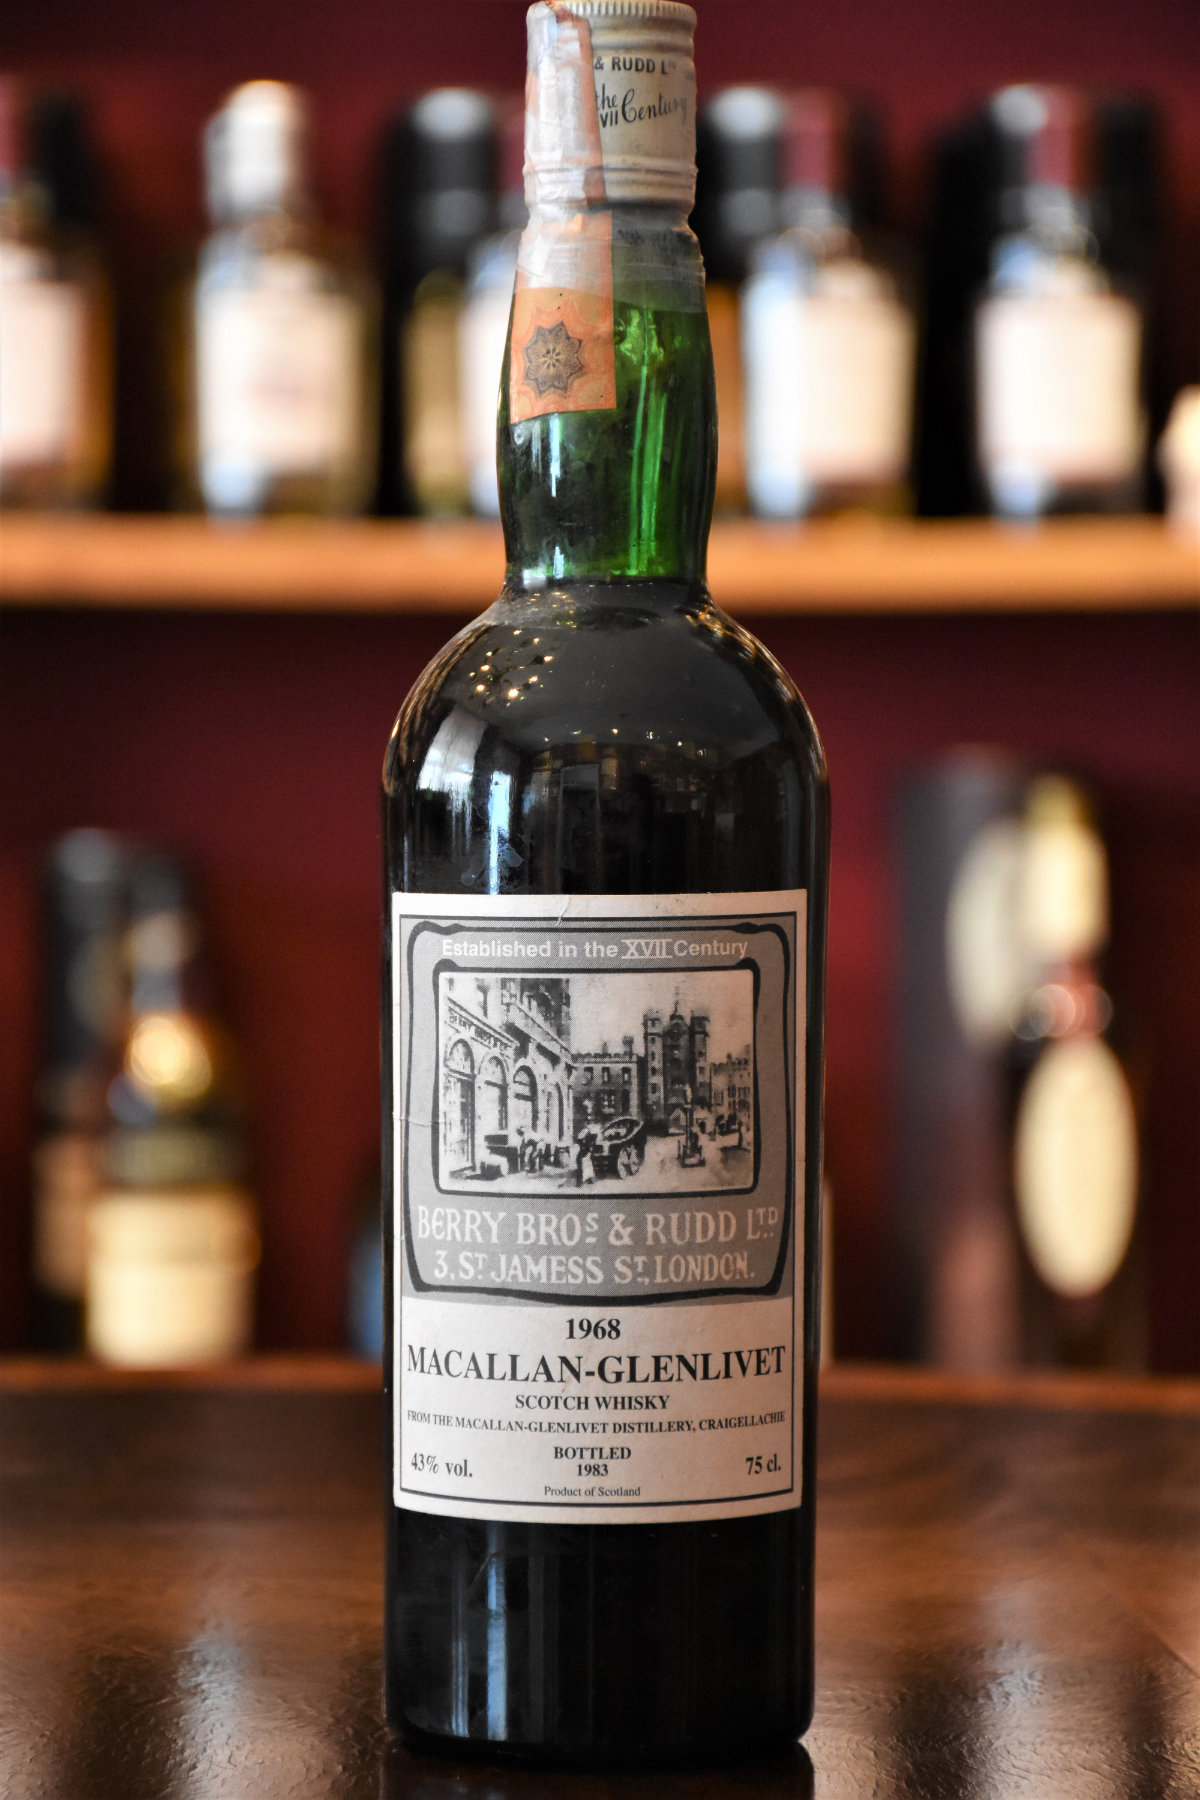 Macallan 1968 Old Bond Street Label Absolute Rarität! 43% Alc.Vol., Berry Bros. & Rudd